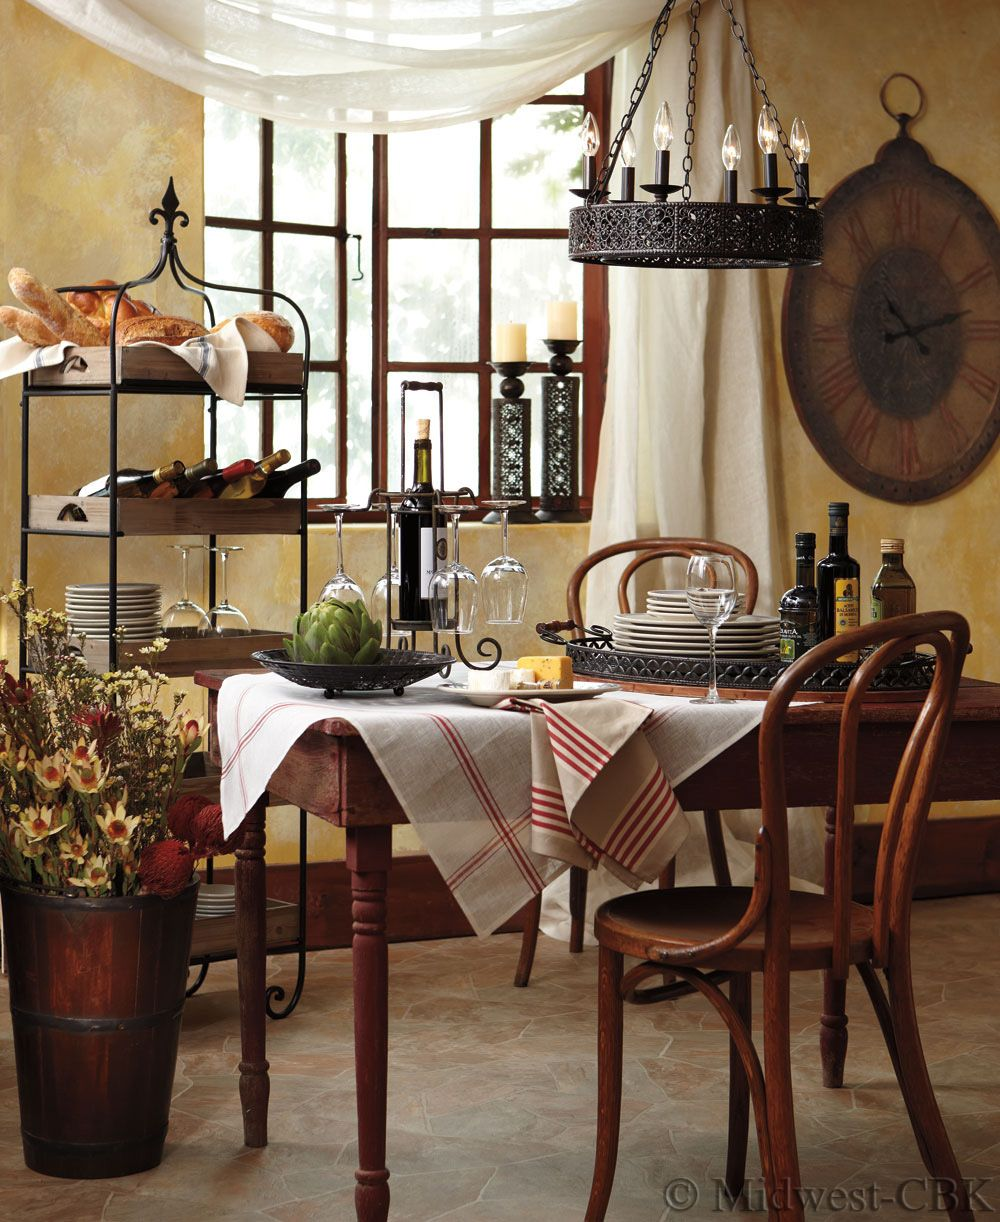 Toscana Global Design Continues To Influence Home Décor And Midwest Cbk S New